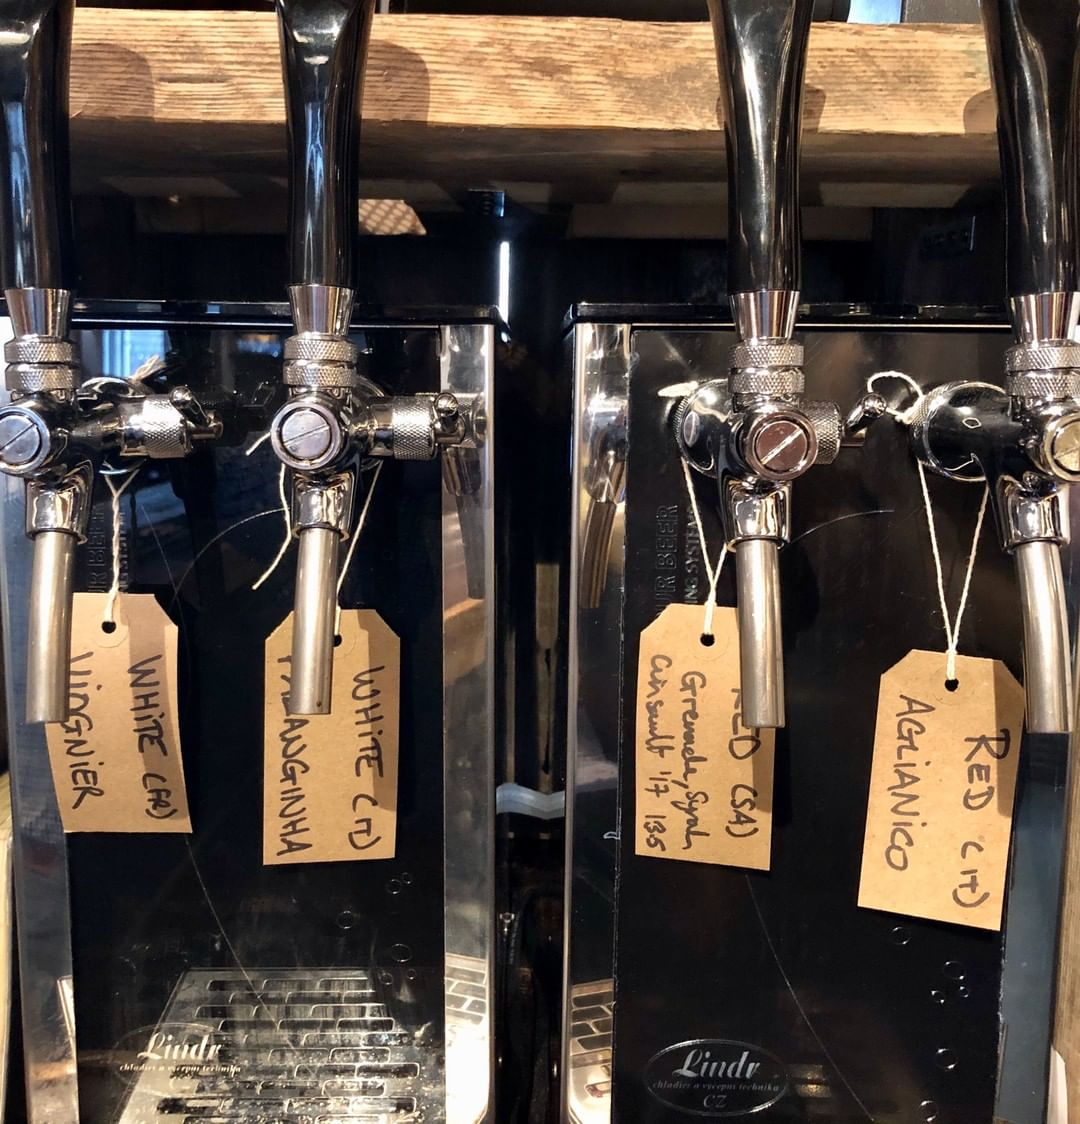 Yes indeed. It's back again. It's free wine Friday. Pop into Walcot Street at 4.30 pm and the first 6 people will get a free glass of wine from our key kegs. #tapfrankietap